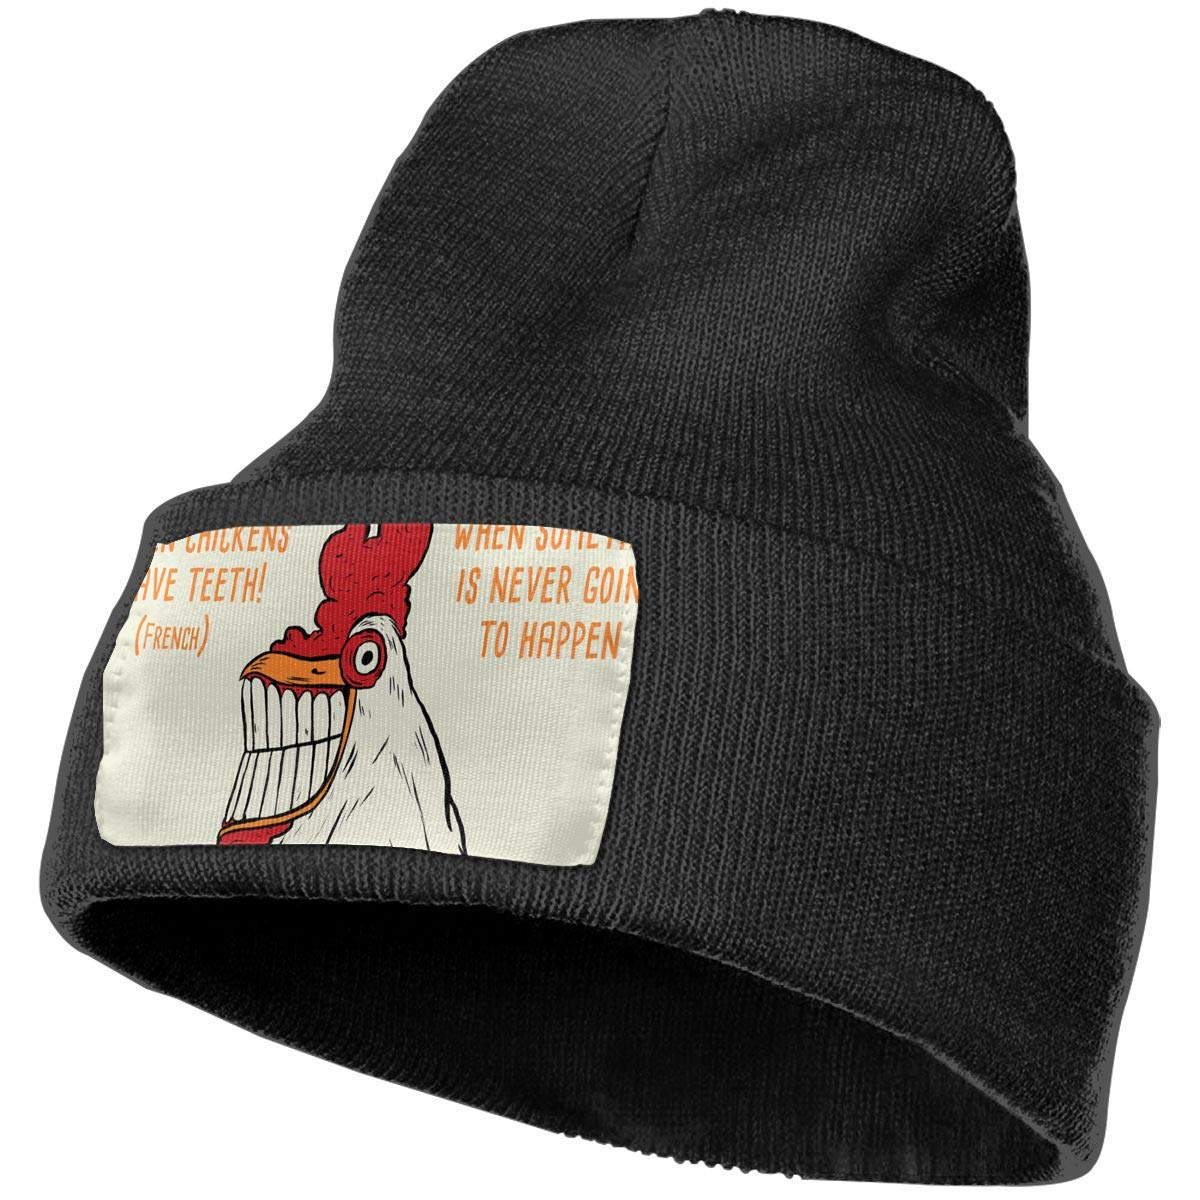 When Checkens Have Teeth Hat for Men and Women Winter Warm Hats Knit Slouchy Thick Skull Cap